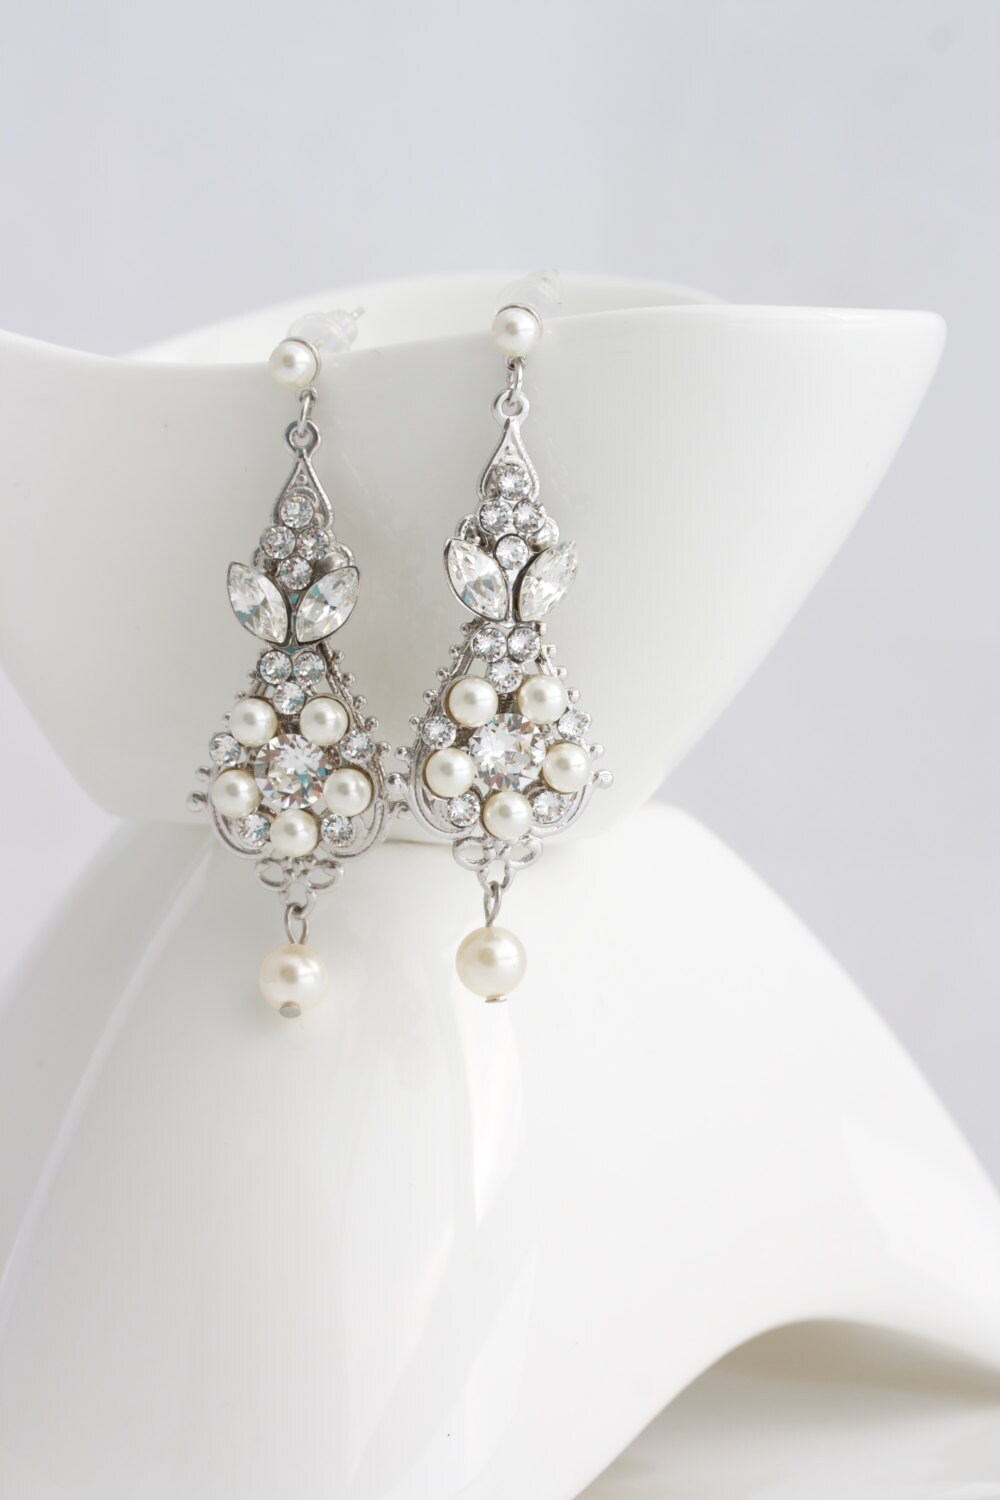 Pearl and Crystal Wedding Earrings Vintage Bridal Earrings